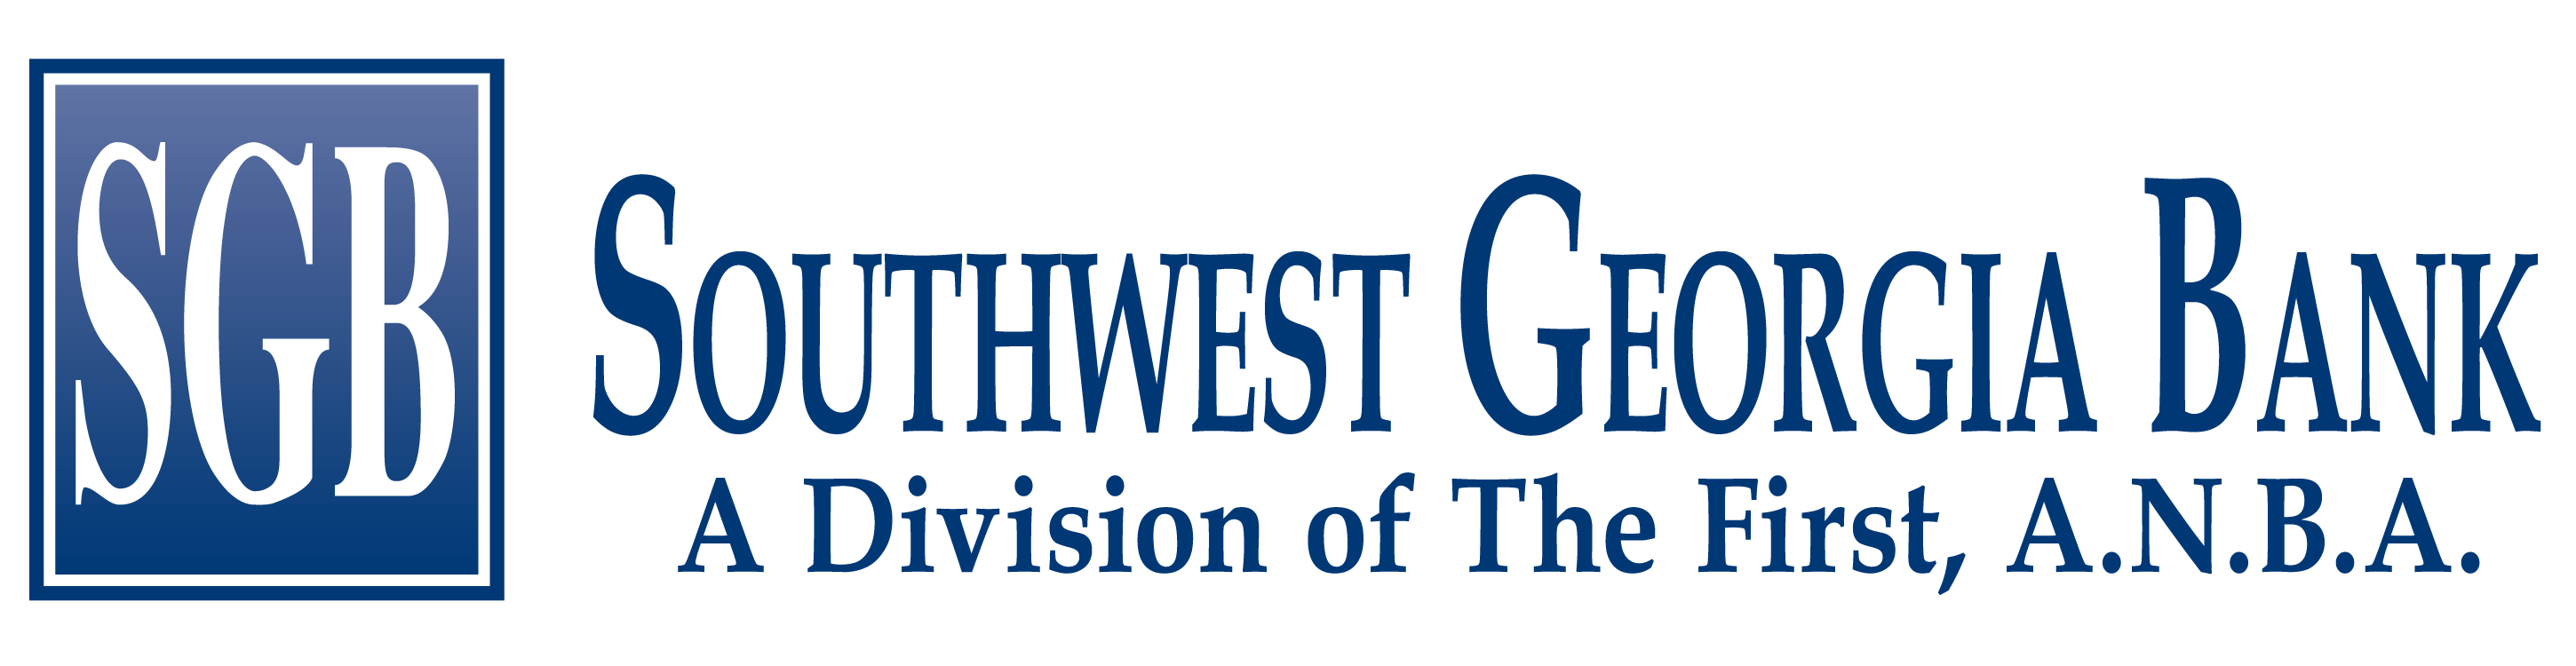 Southwest Georgia Bank Logo Image